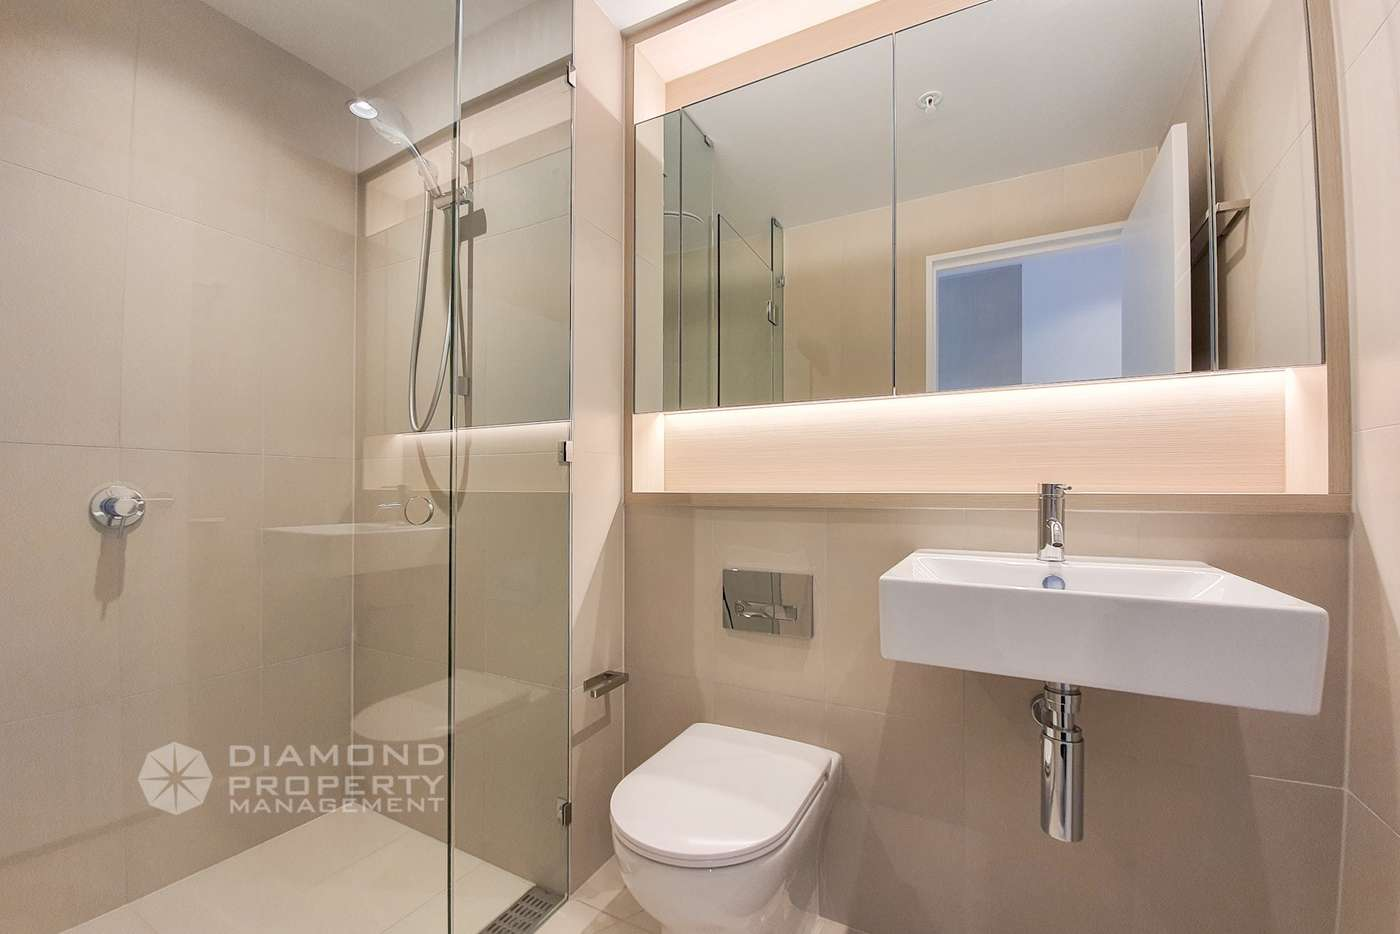 Sixth view of Homely apartment listing, 302/628 Flinders Street, Docklands VIC 3008